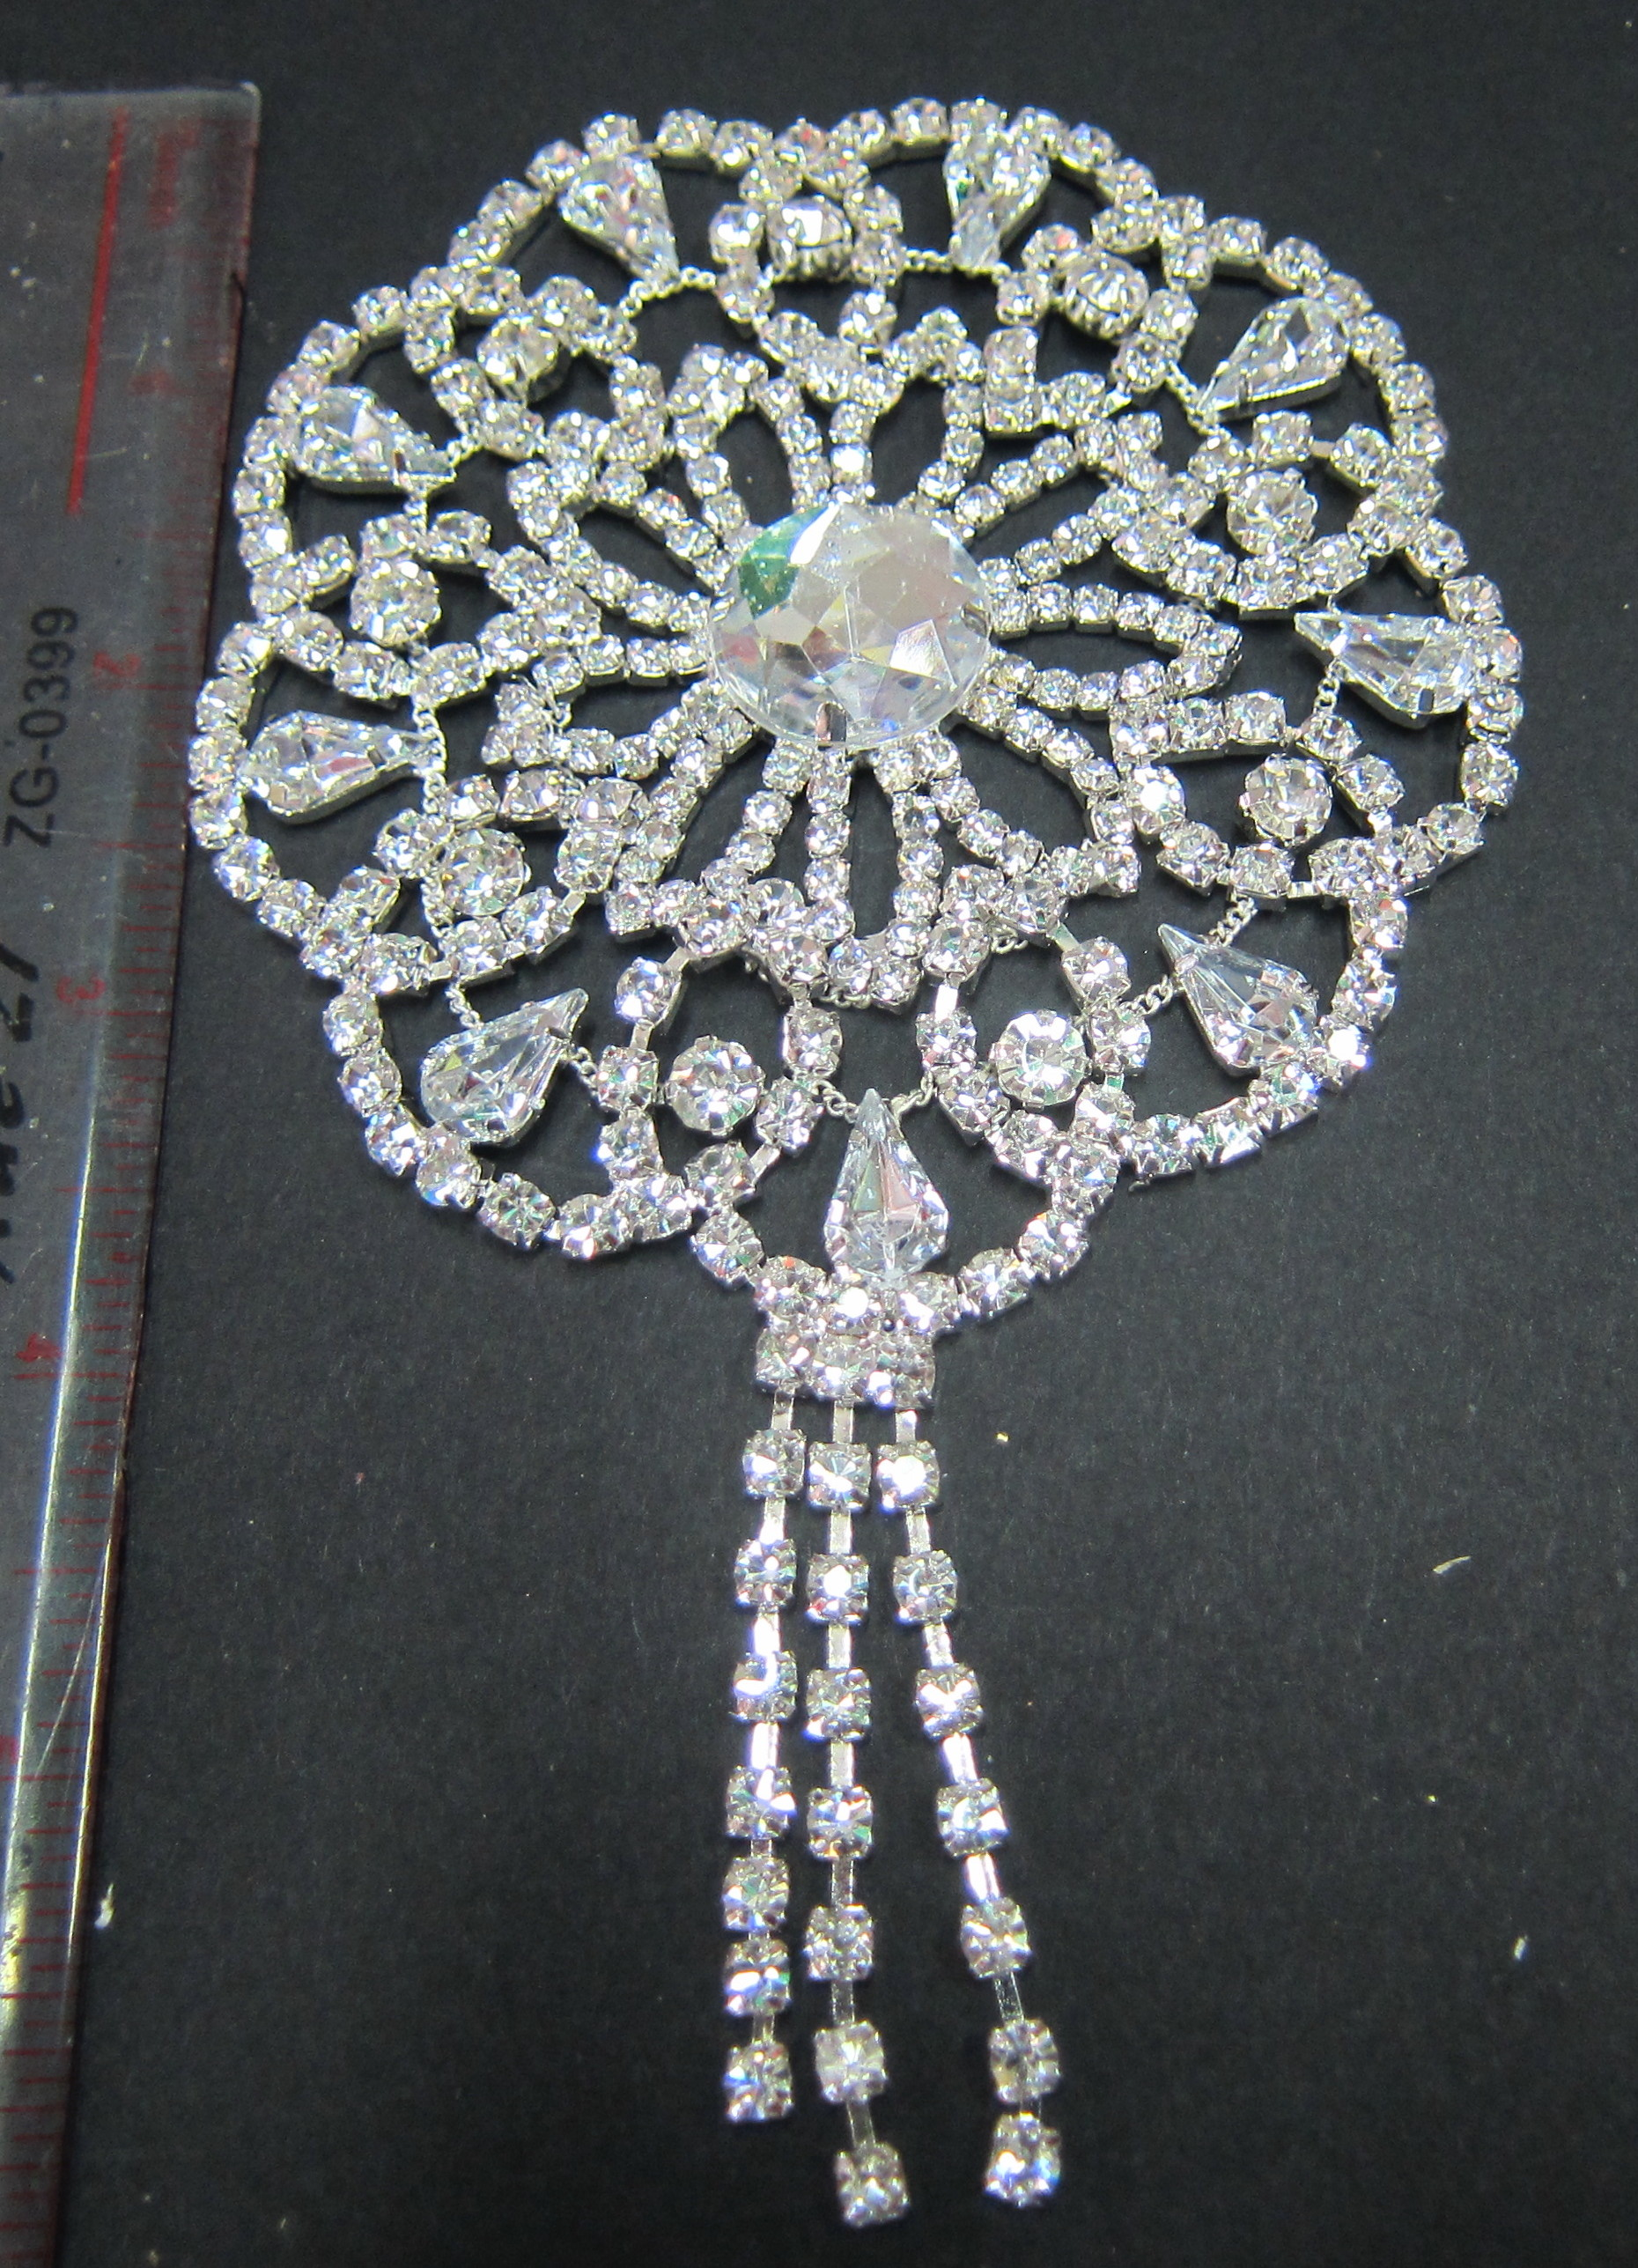 C10-02 Rhinestone Applique